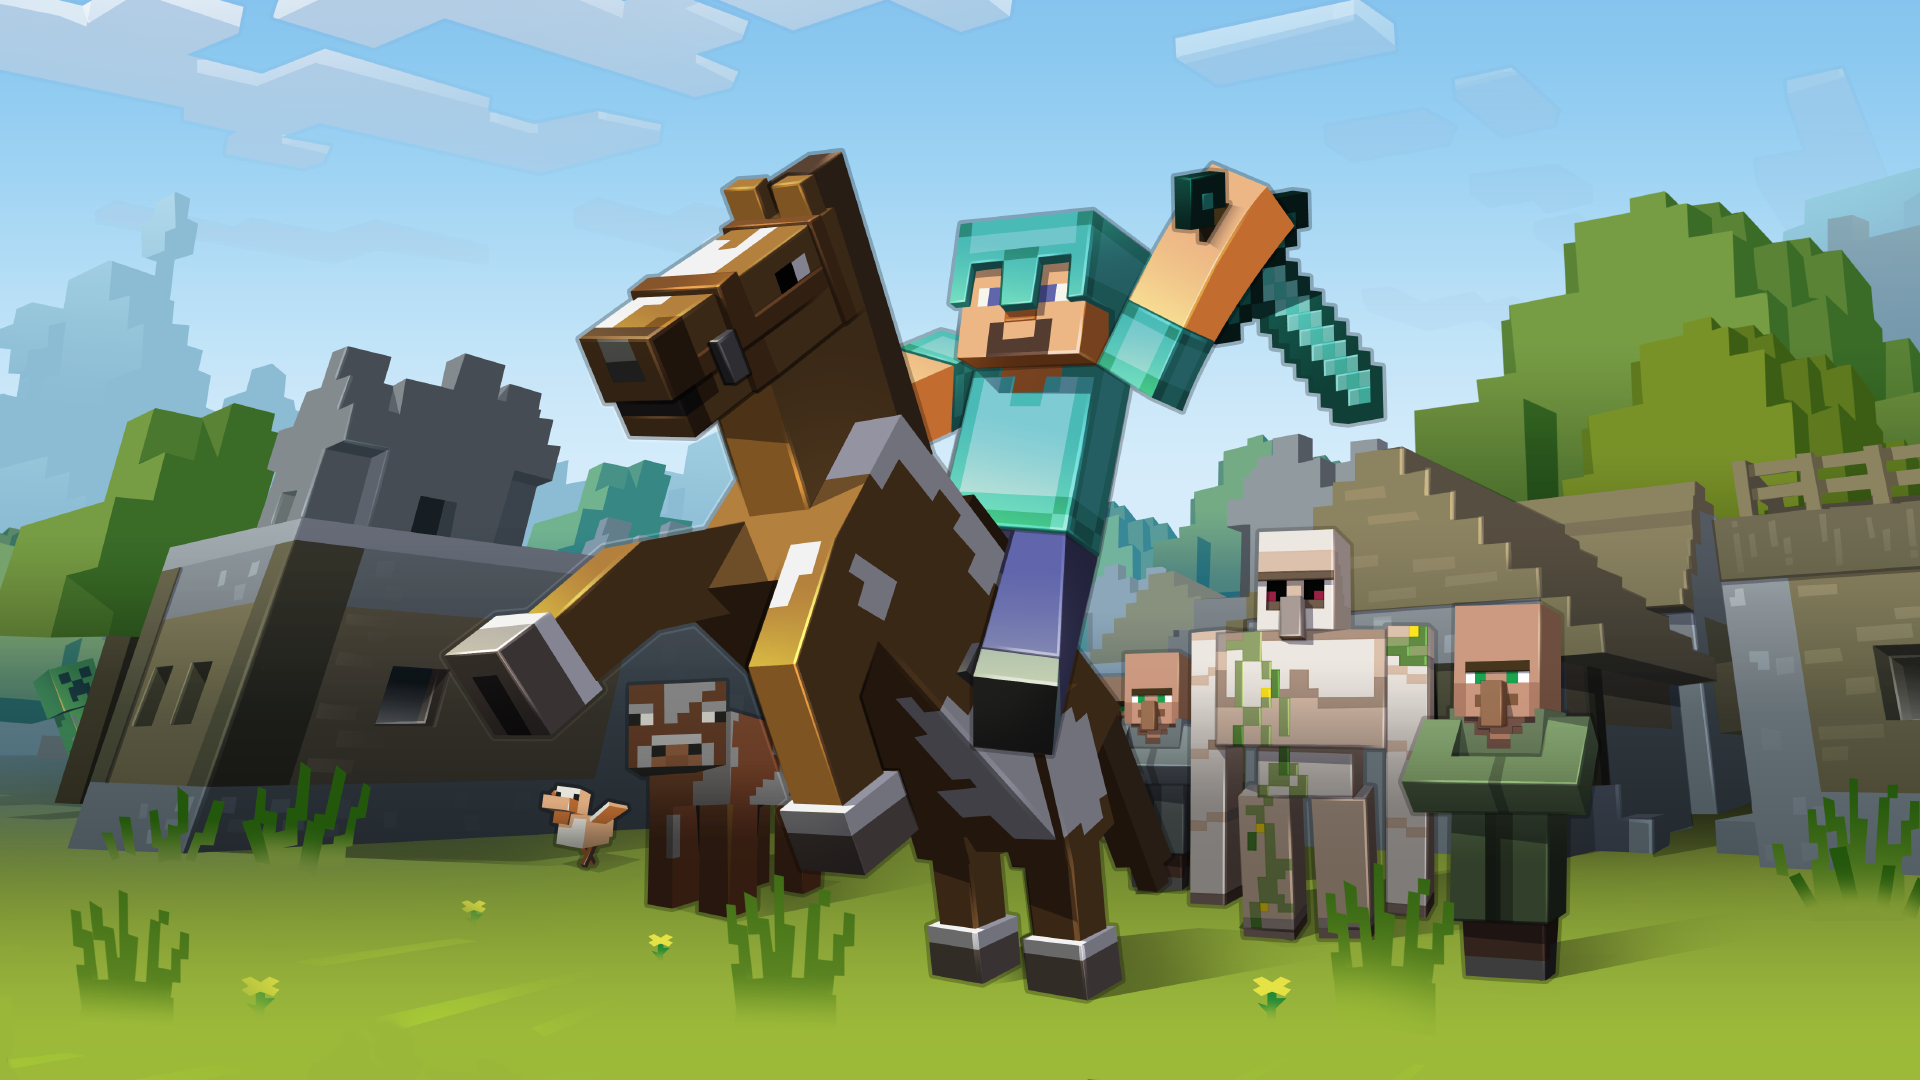 minecraft1-6-4-1920x1080-png2.png